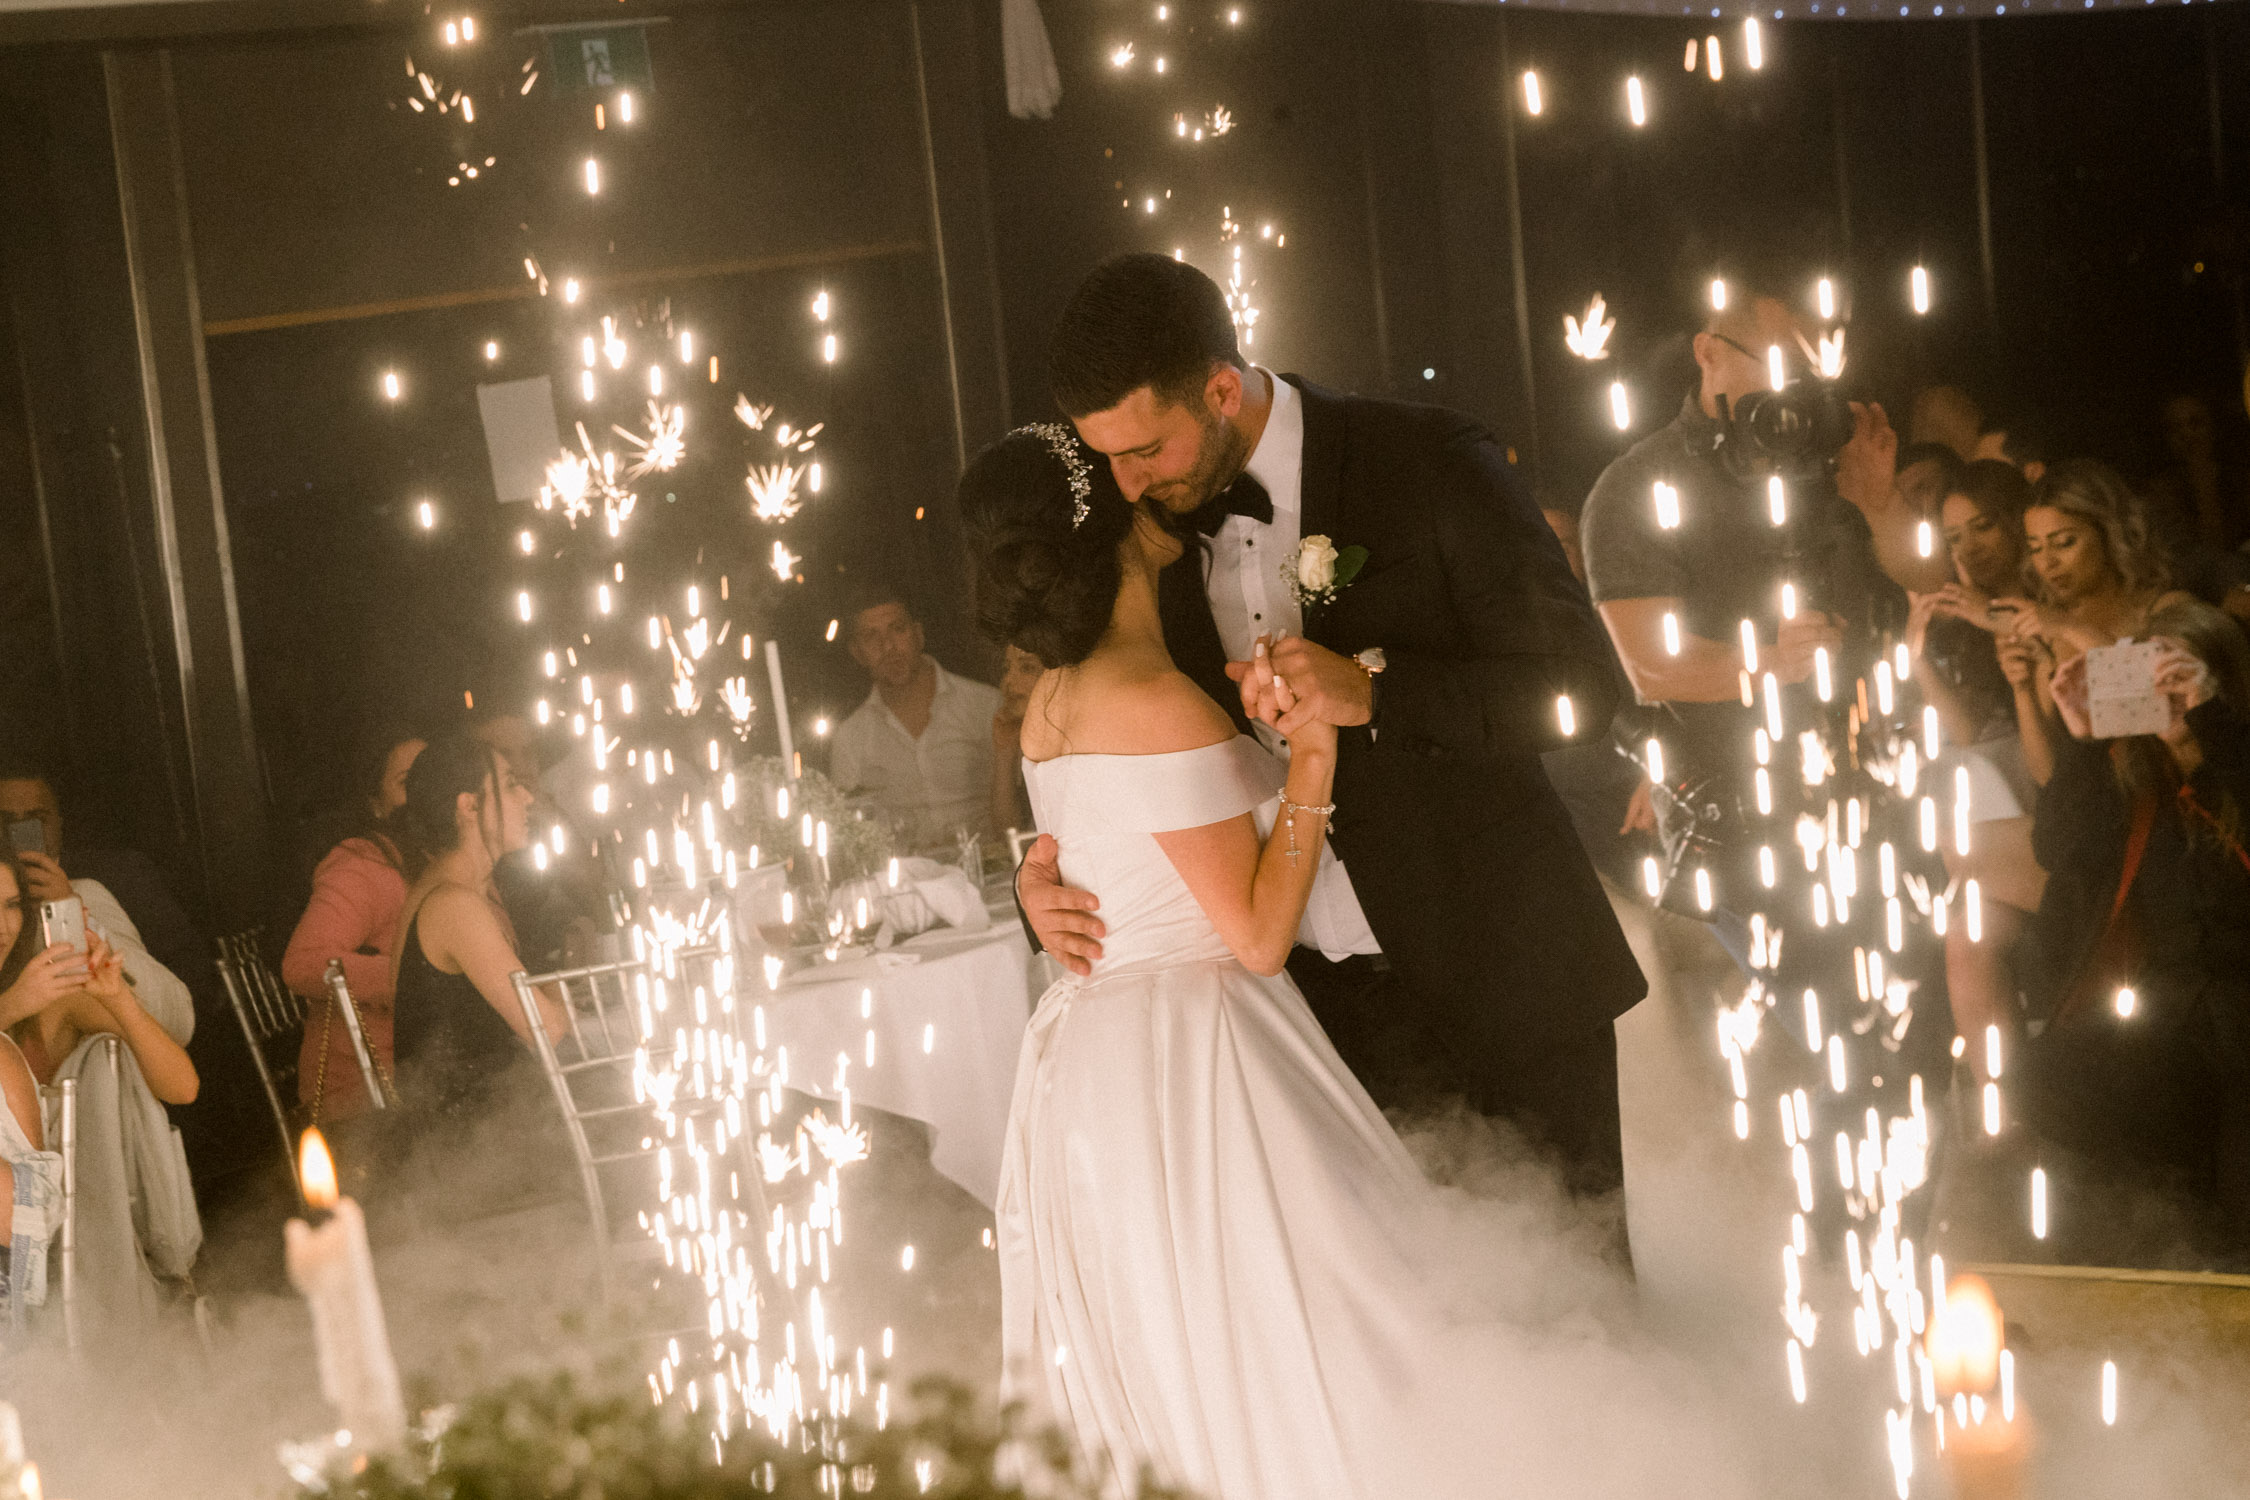 professional wedding photographer answer most asked questions